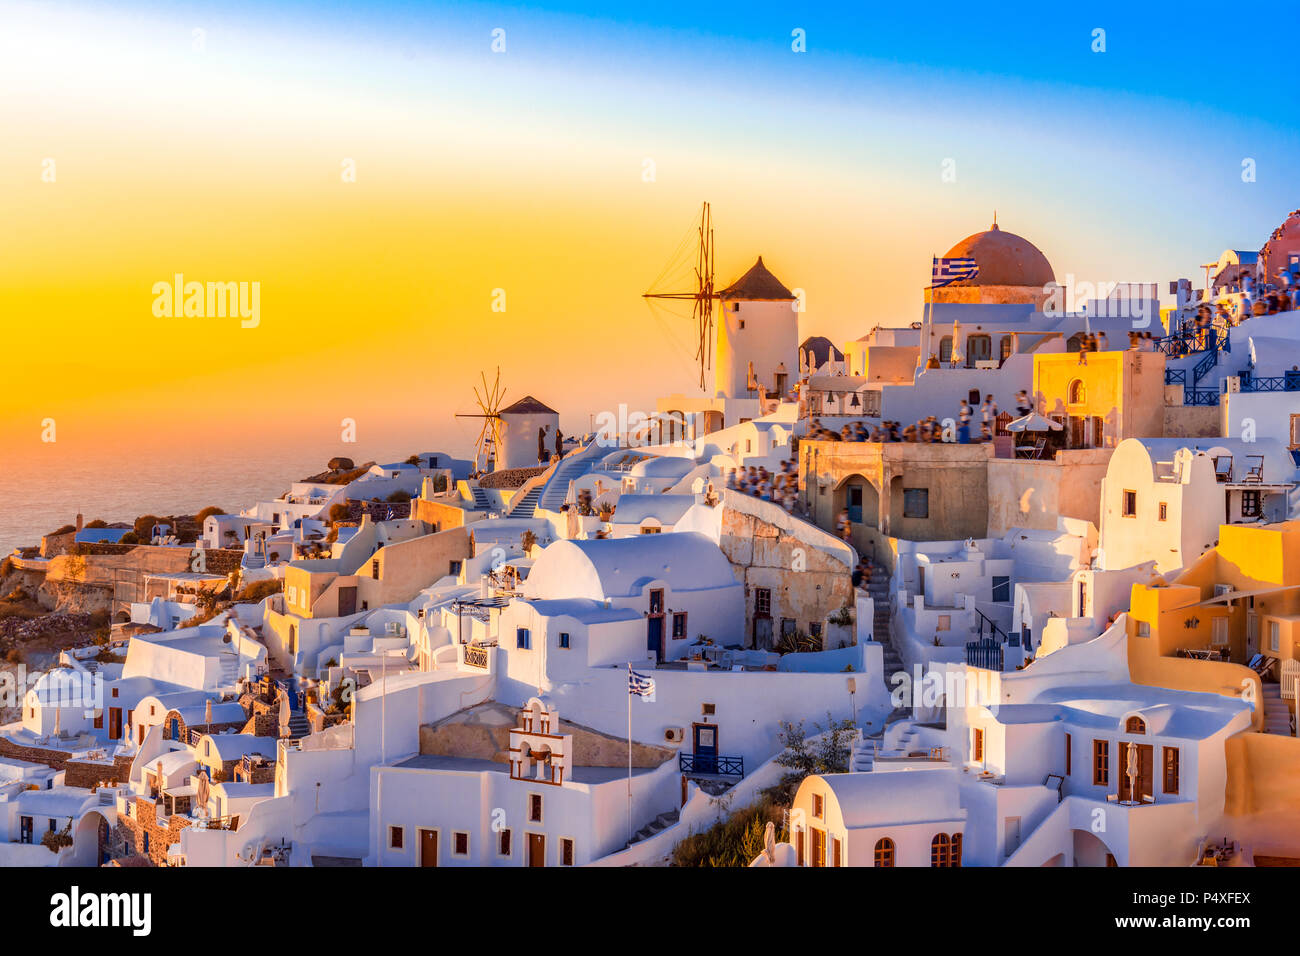 Sunset in Oia town, Santorini island, Greece. Traditional and famous white houses and churches  with blue domes over the Caldera, Aegean sea. - Stock Image